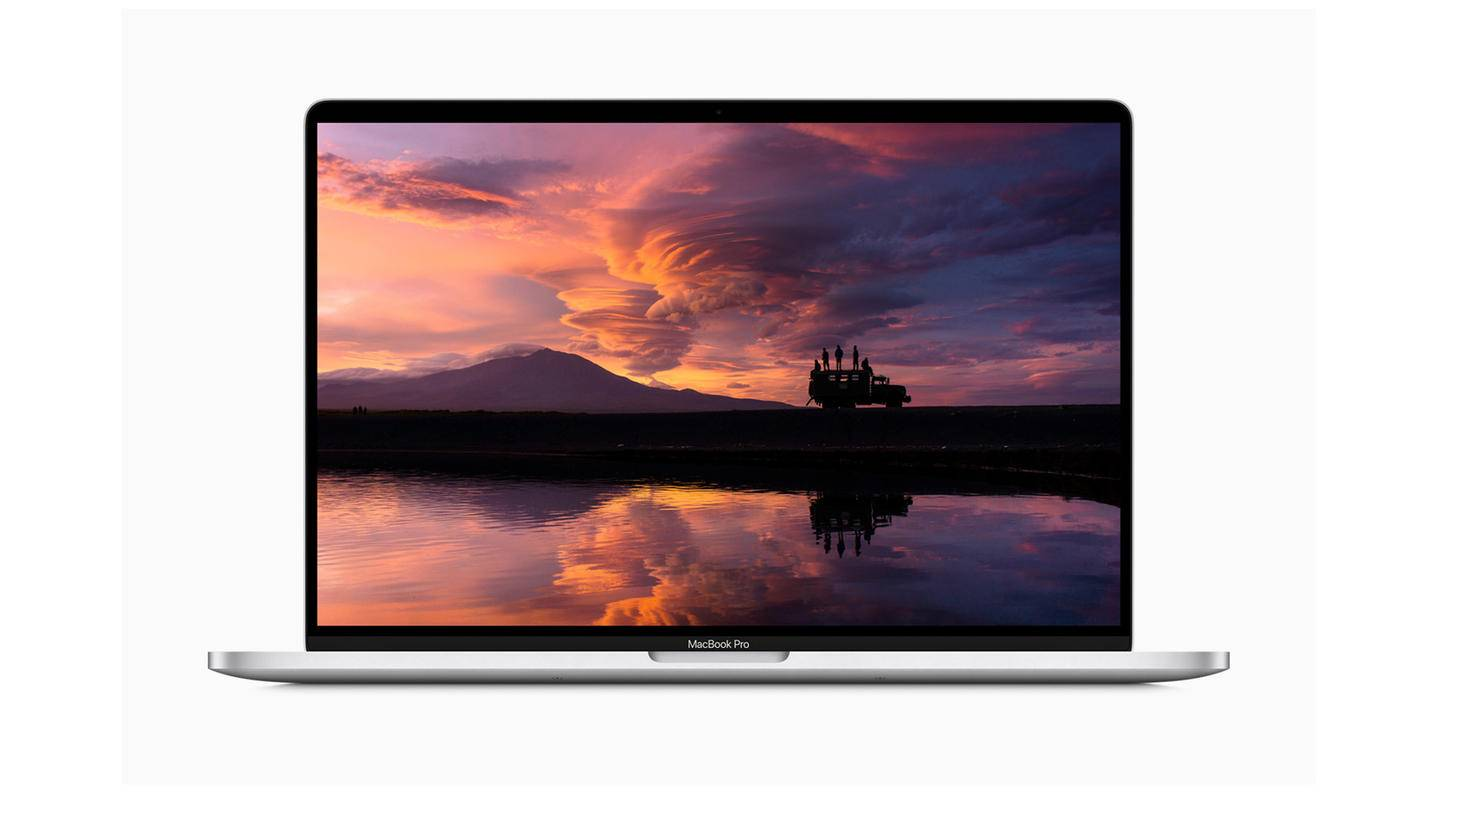 macbook-pro-16-display